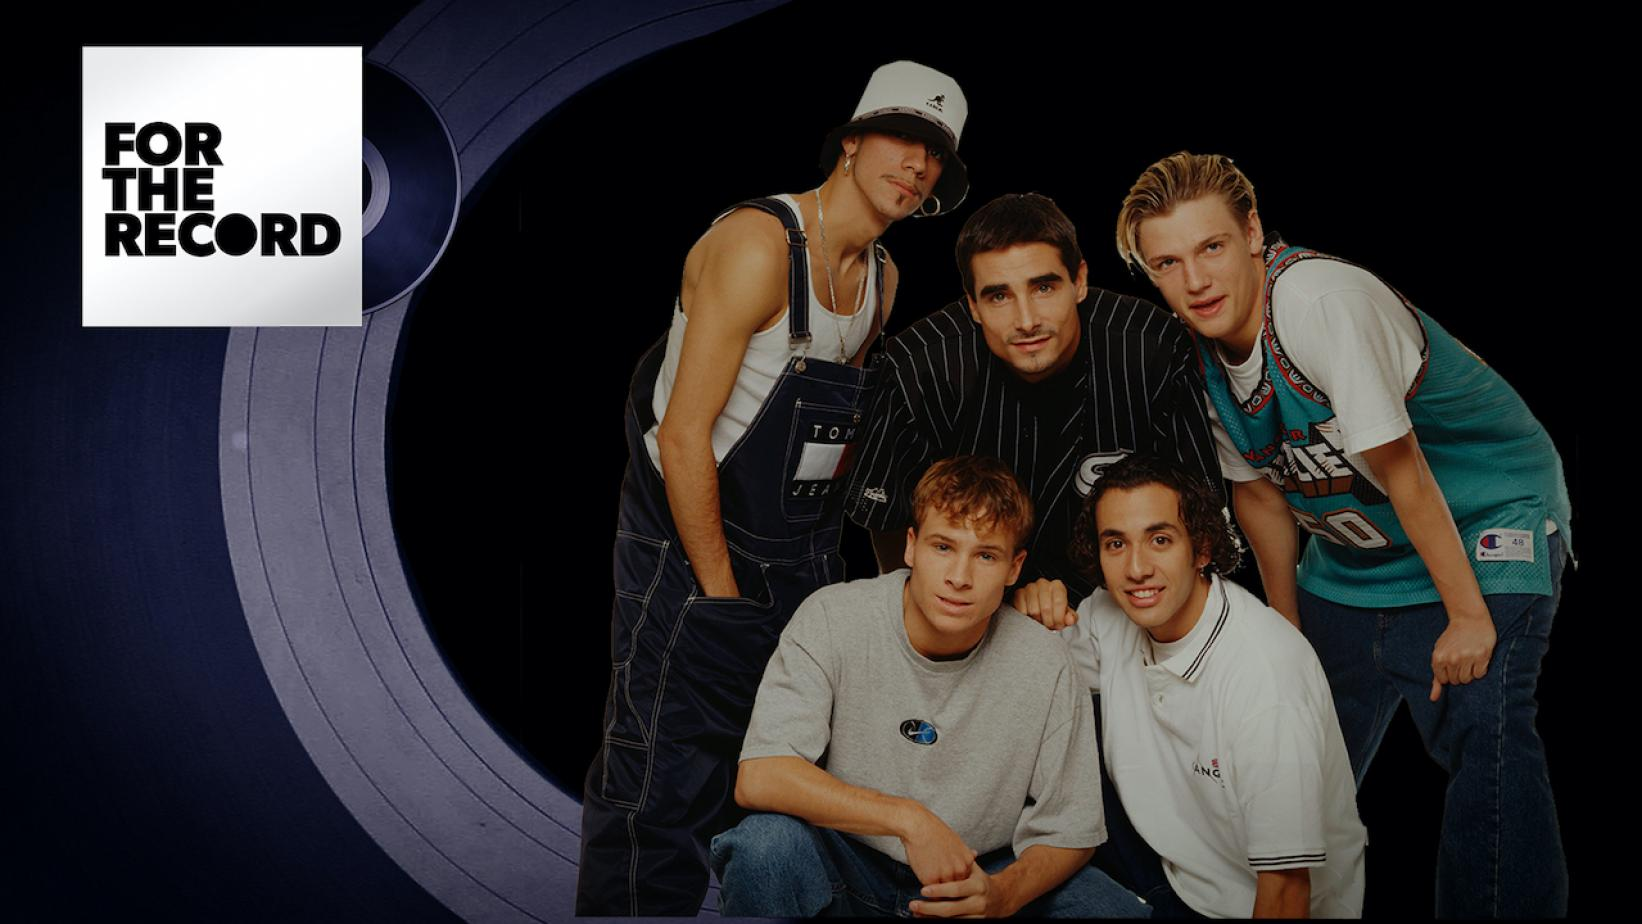 Artwork for For The Record episode with Backstreet Boys